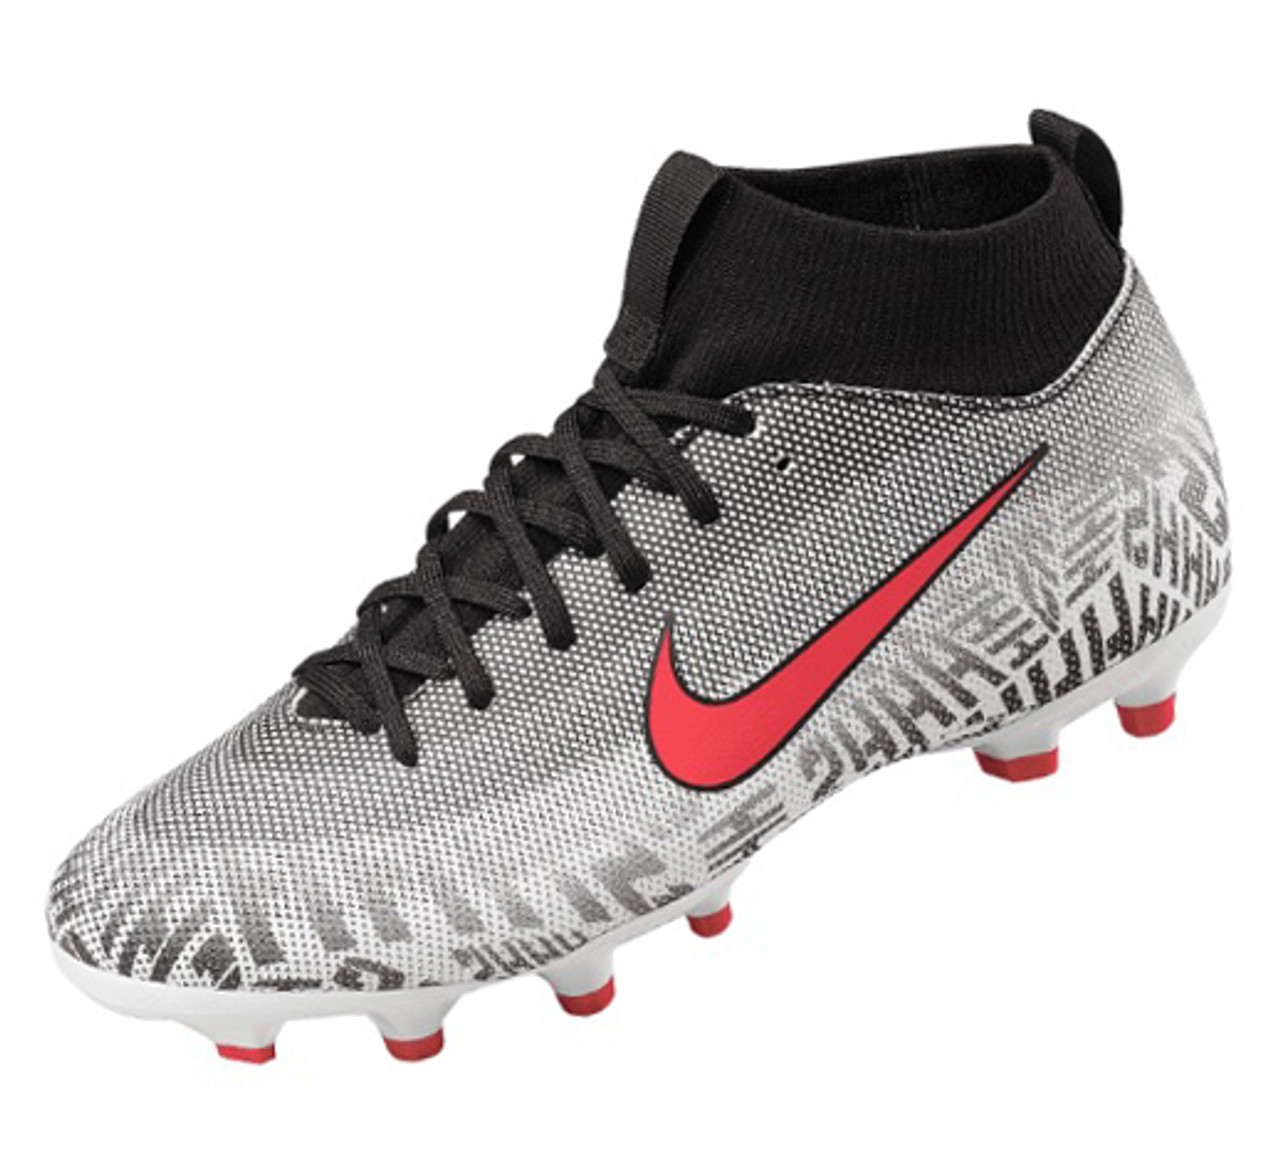 df1cfd54adc43 Nike Neymar Jr. Superfly 6 Academy MG Multiground - White/Challenge  Red/Black (021819) - ohp soccer